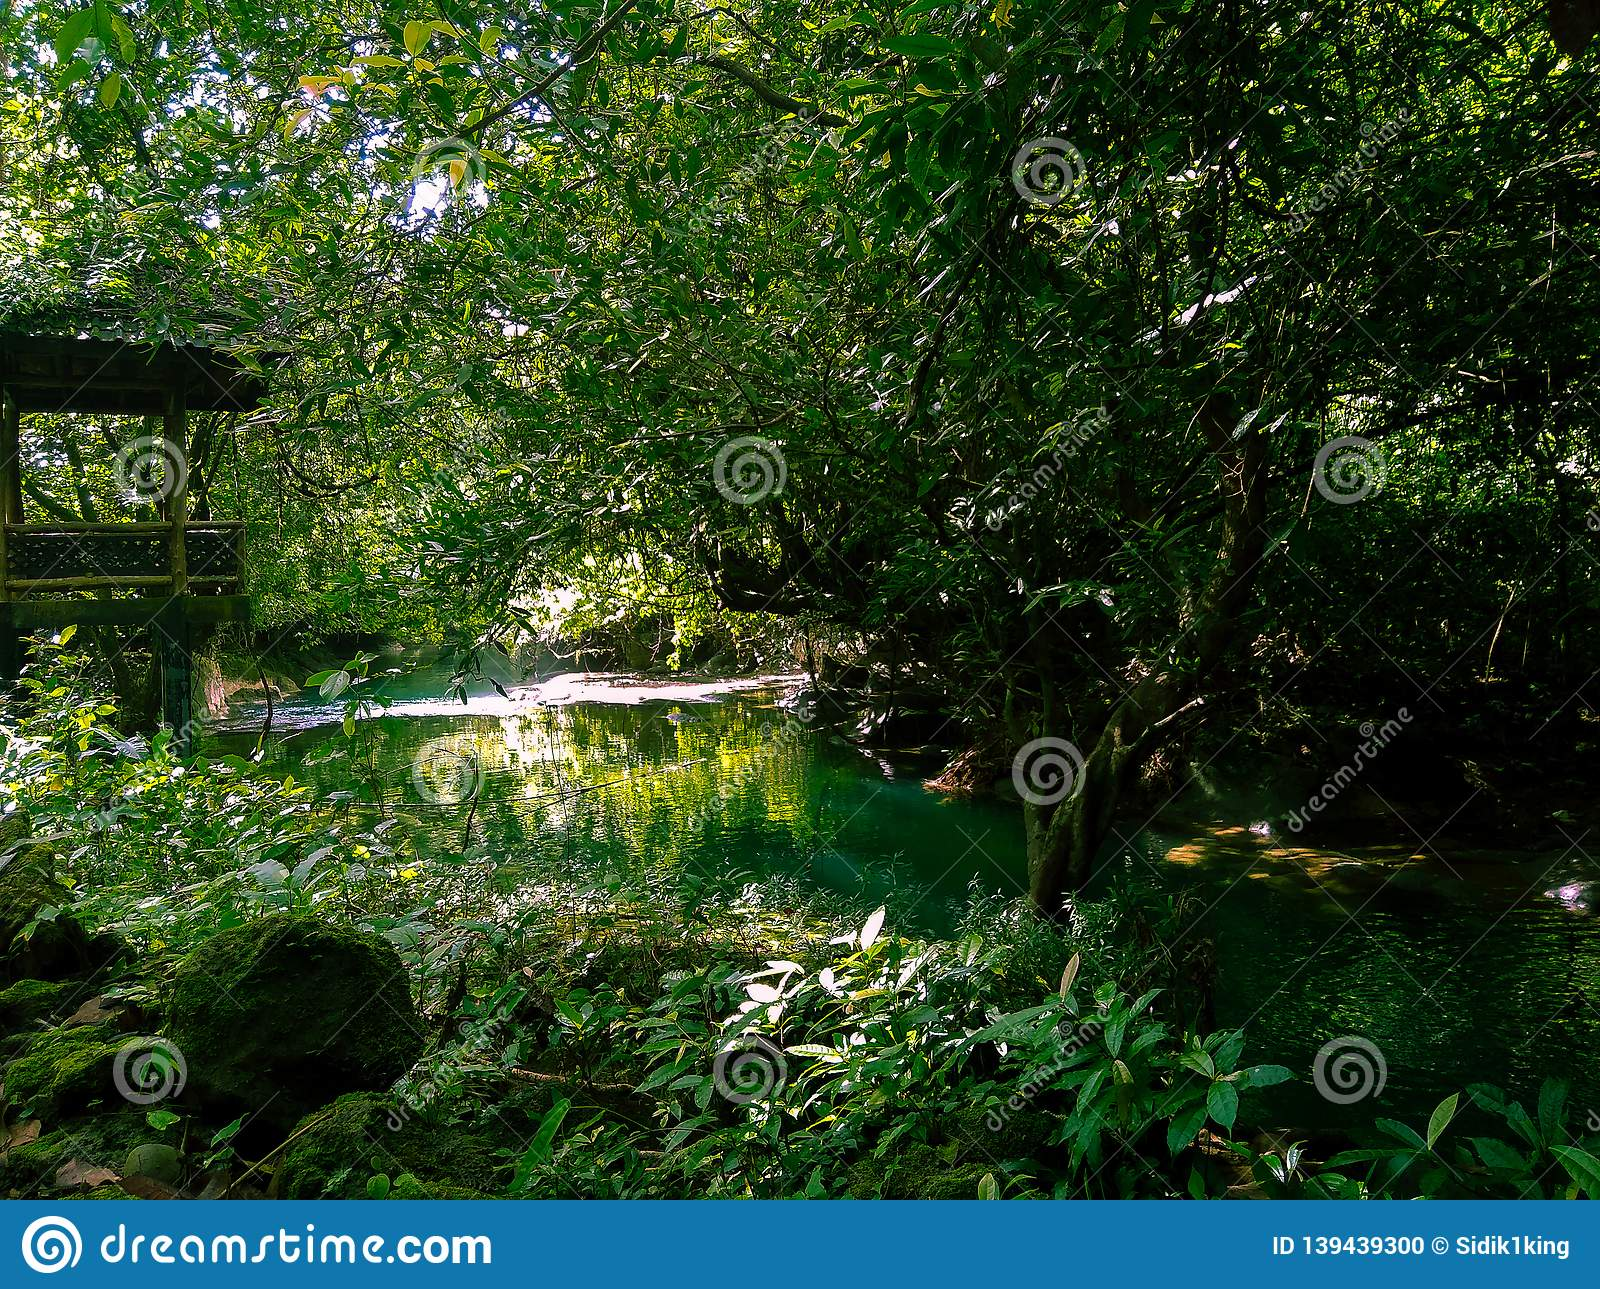 A beautiful river hidden in the forest.